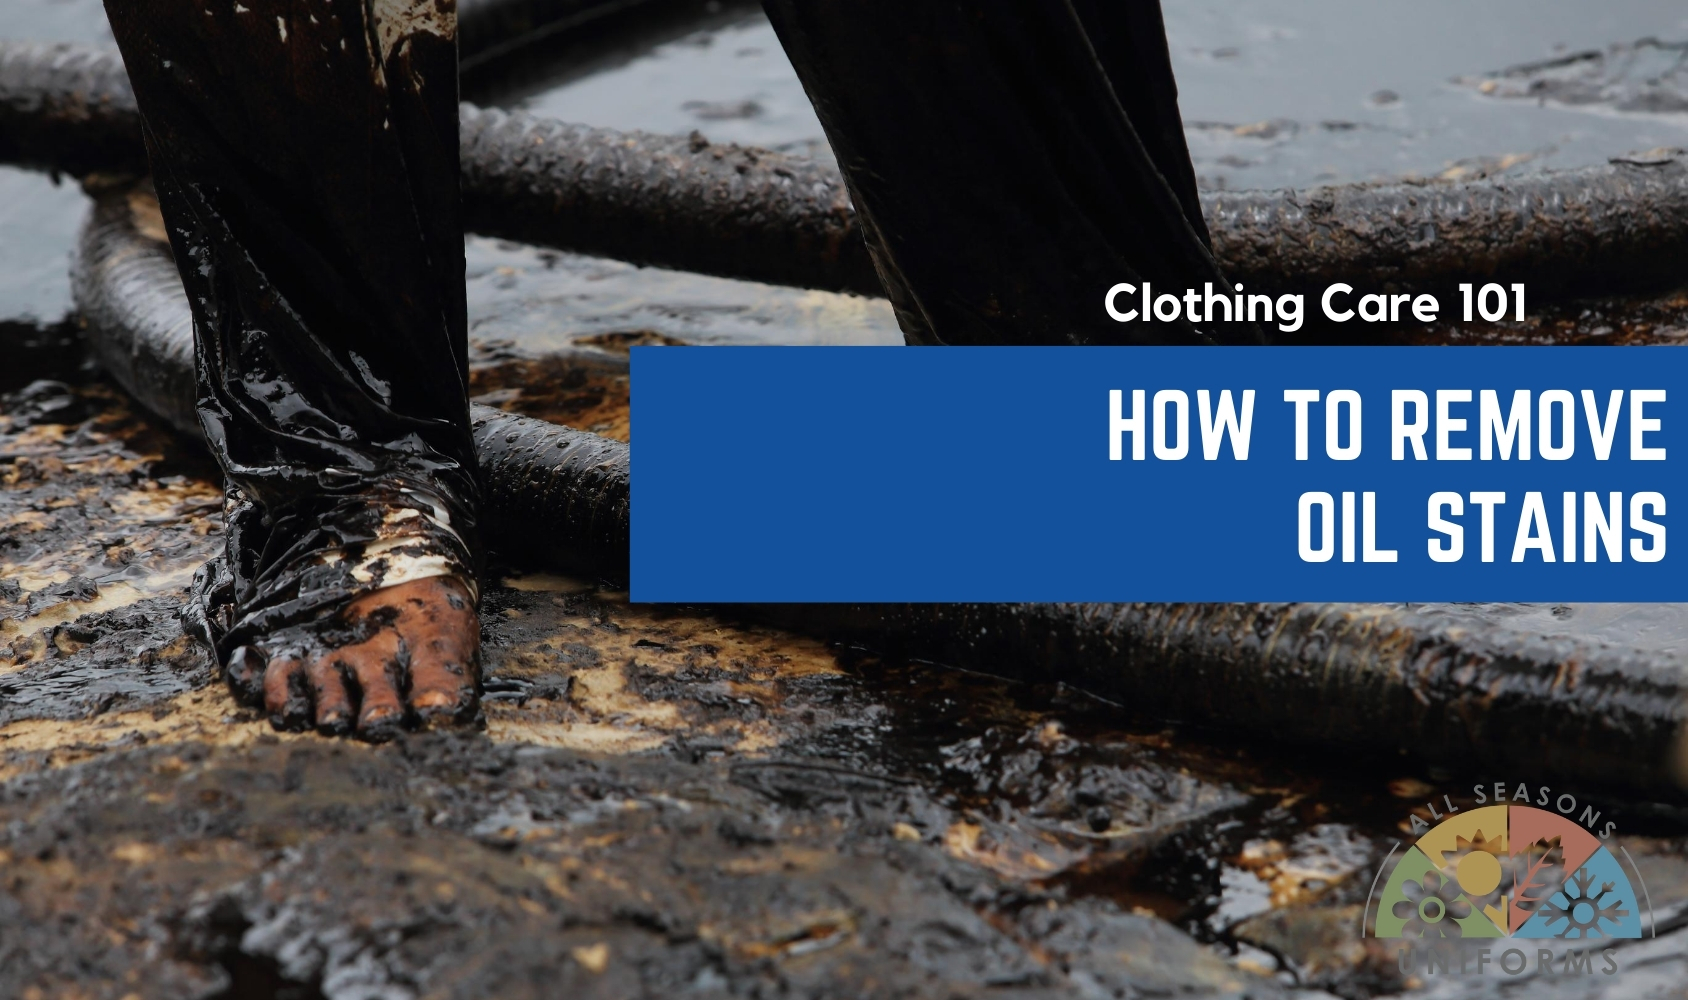 Clothing Care 101 – How to Remove Oil Stains from Work Clothes